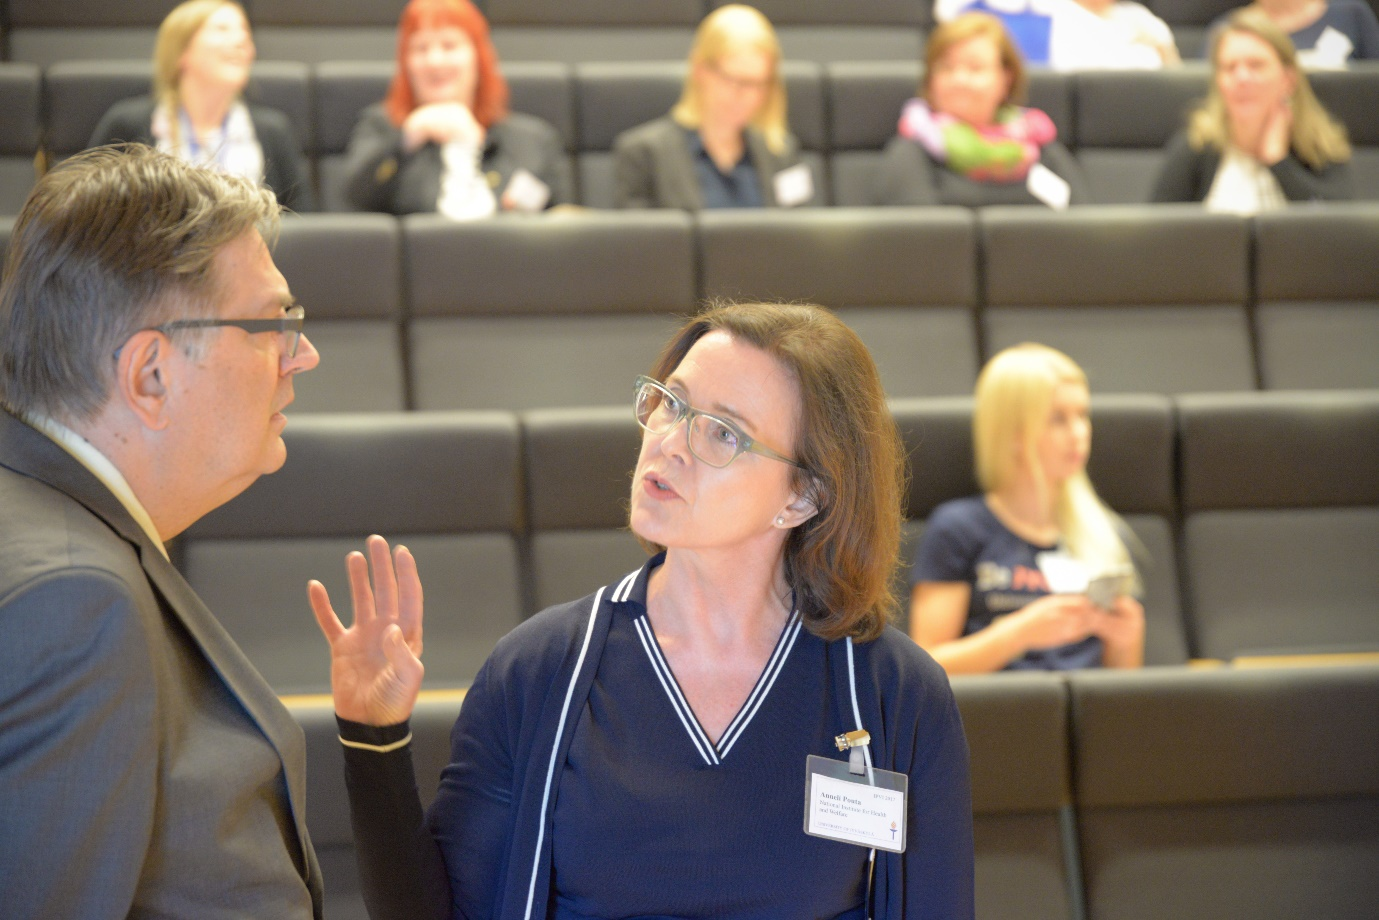 Professor Mikko Mäntysaari, the Chair of the Conference and Director Anneli Pouta, the representative of National Institute for Health and Welfare